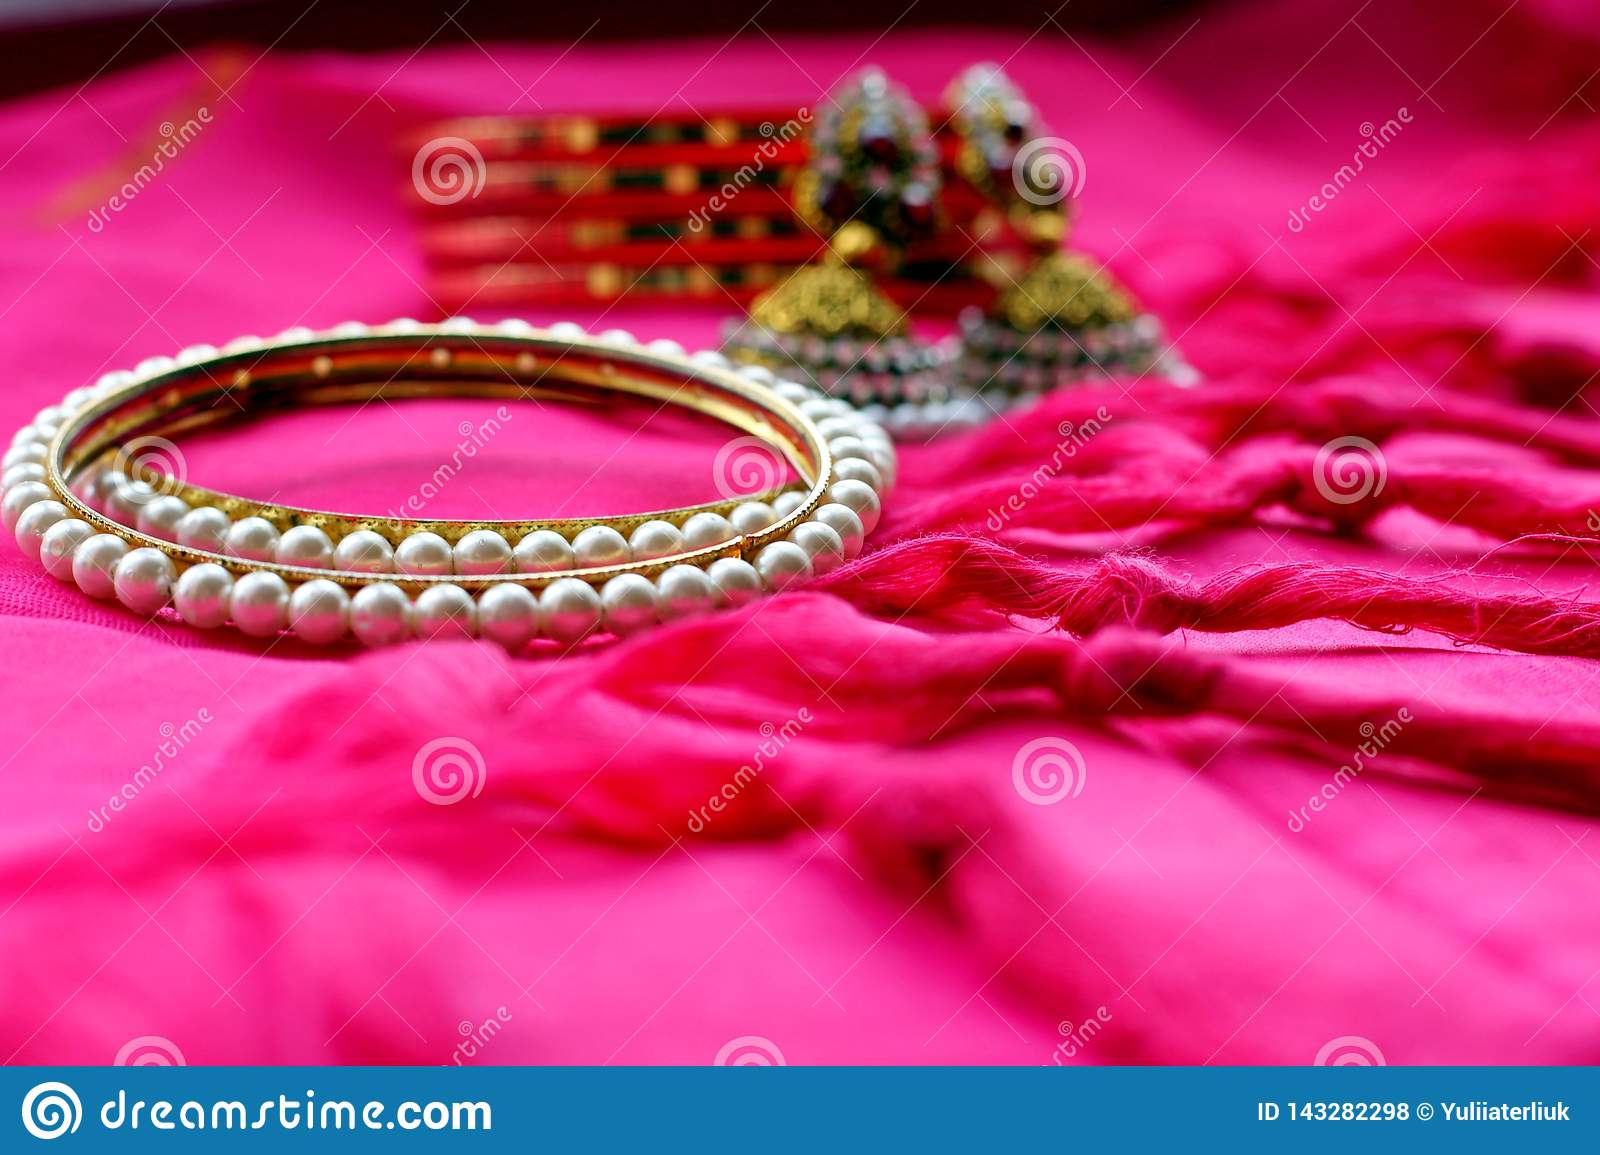 Indian ethnic jewelry bracelets and earrings on pink fabric